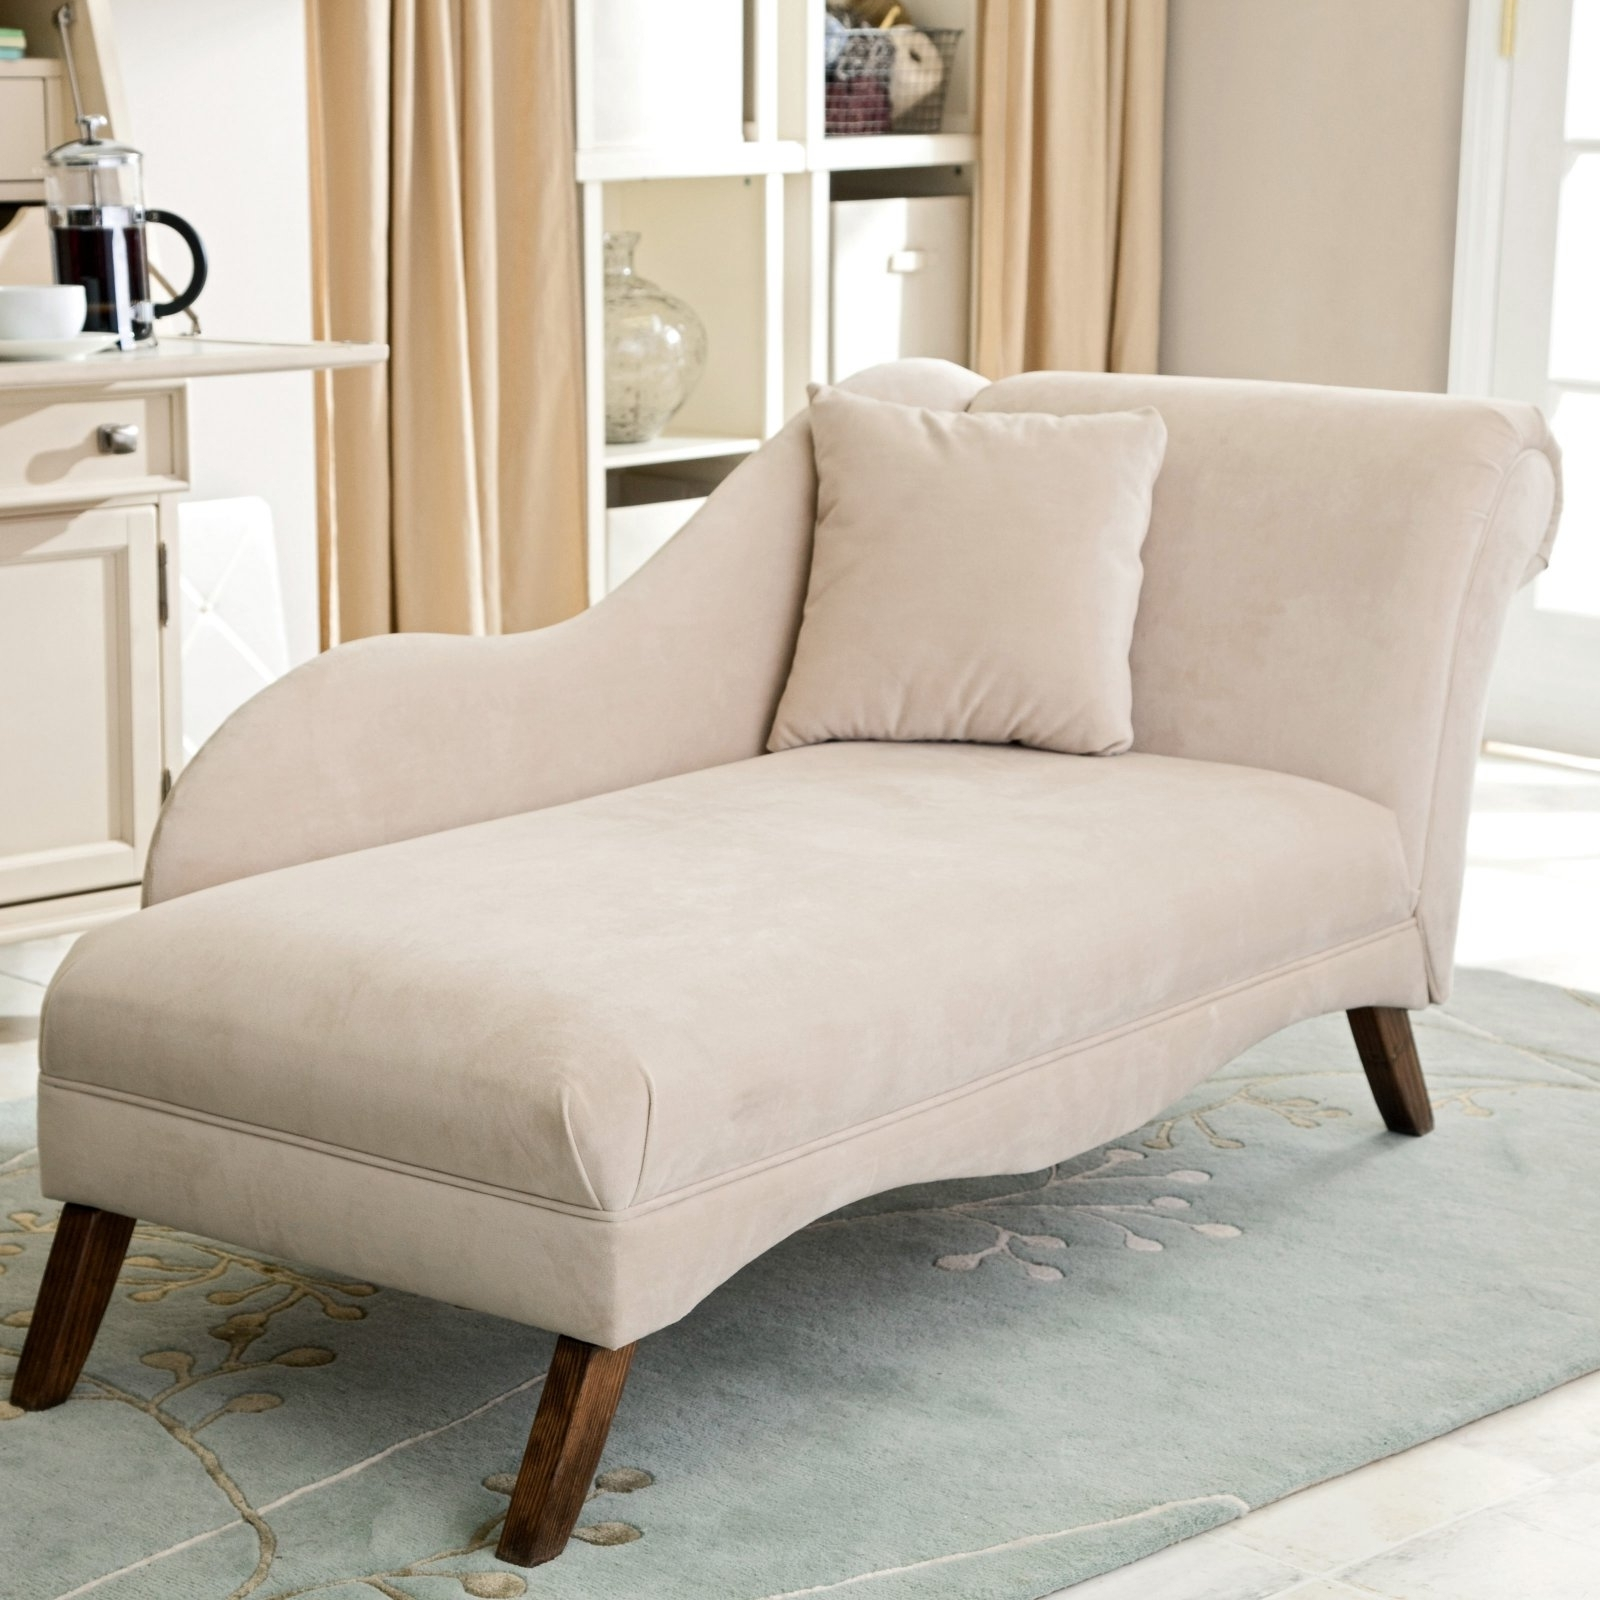 Popular Chaise Chairs For Bedroom In Grandiose Beige Fabric Upholstery Chaise Lounge With Wooden Base (View 11 of 15)